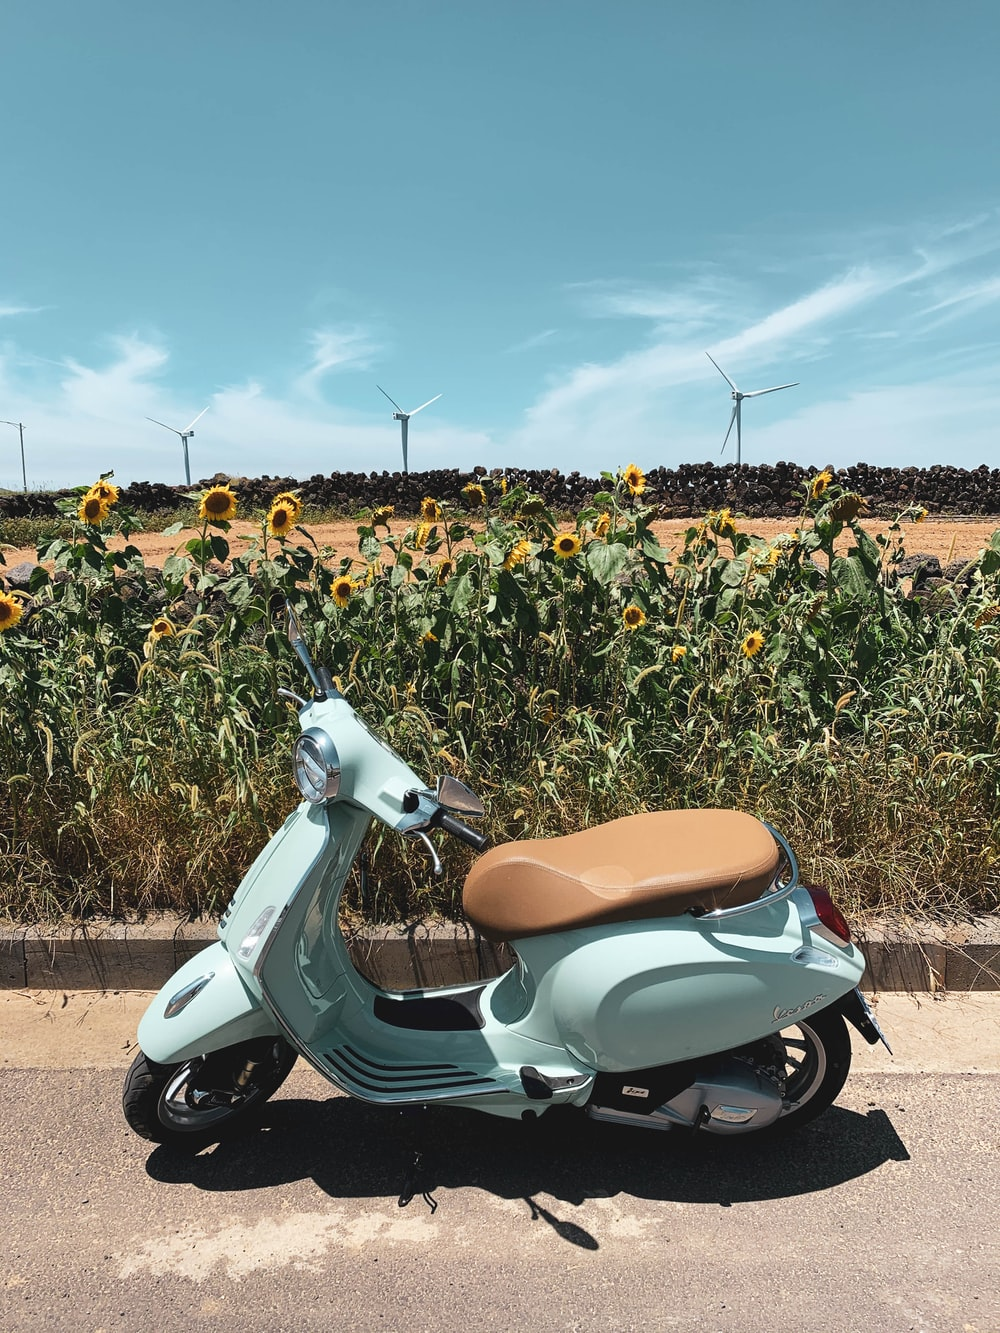 white and brown motor scooter on green grass field during daytime